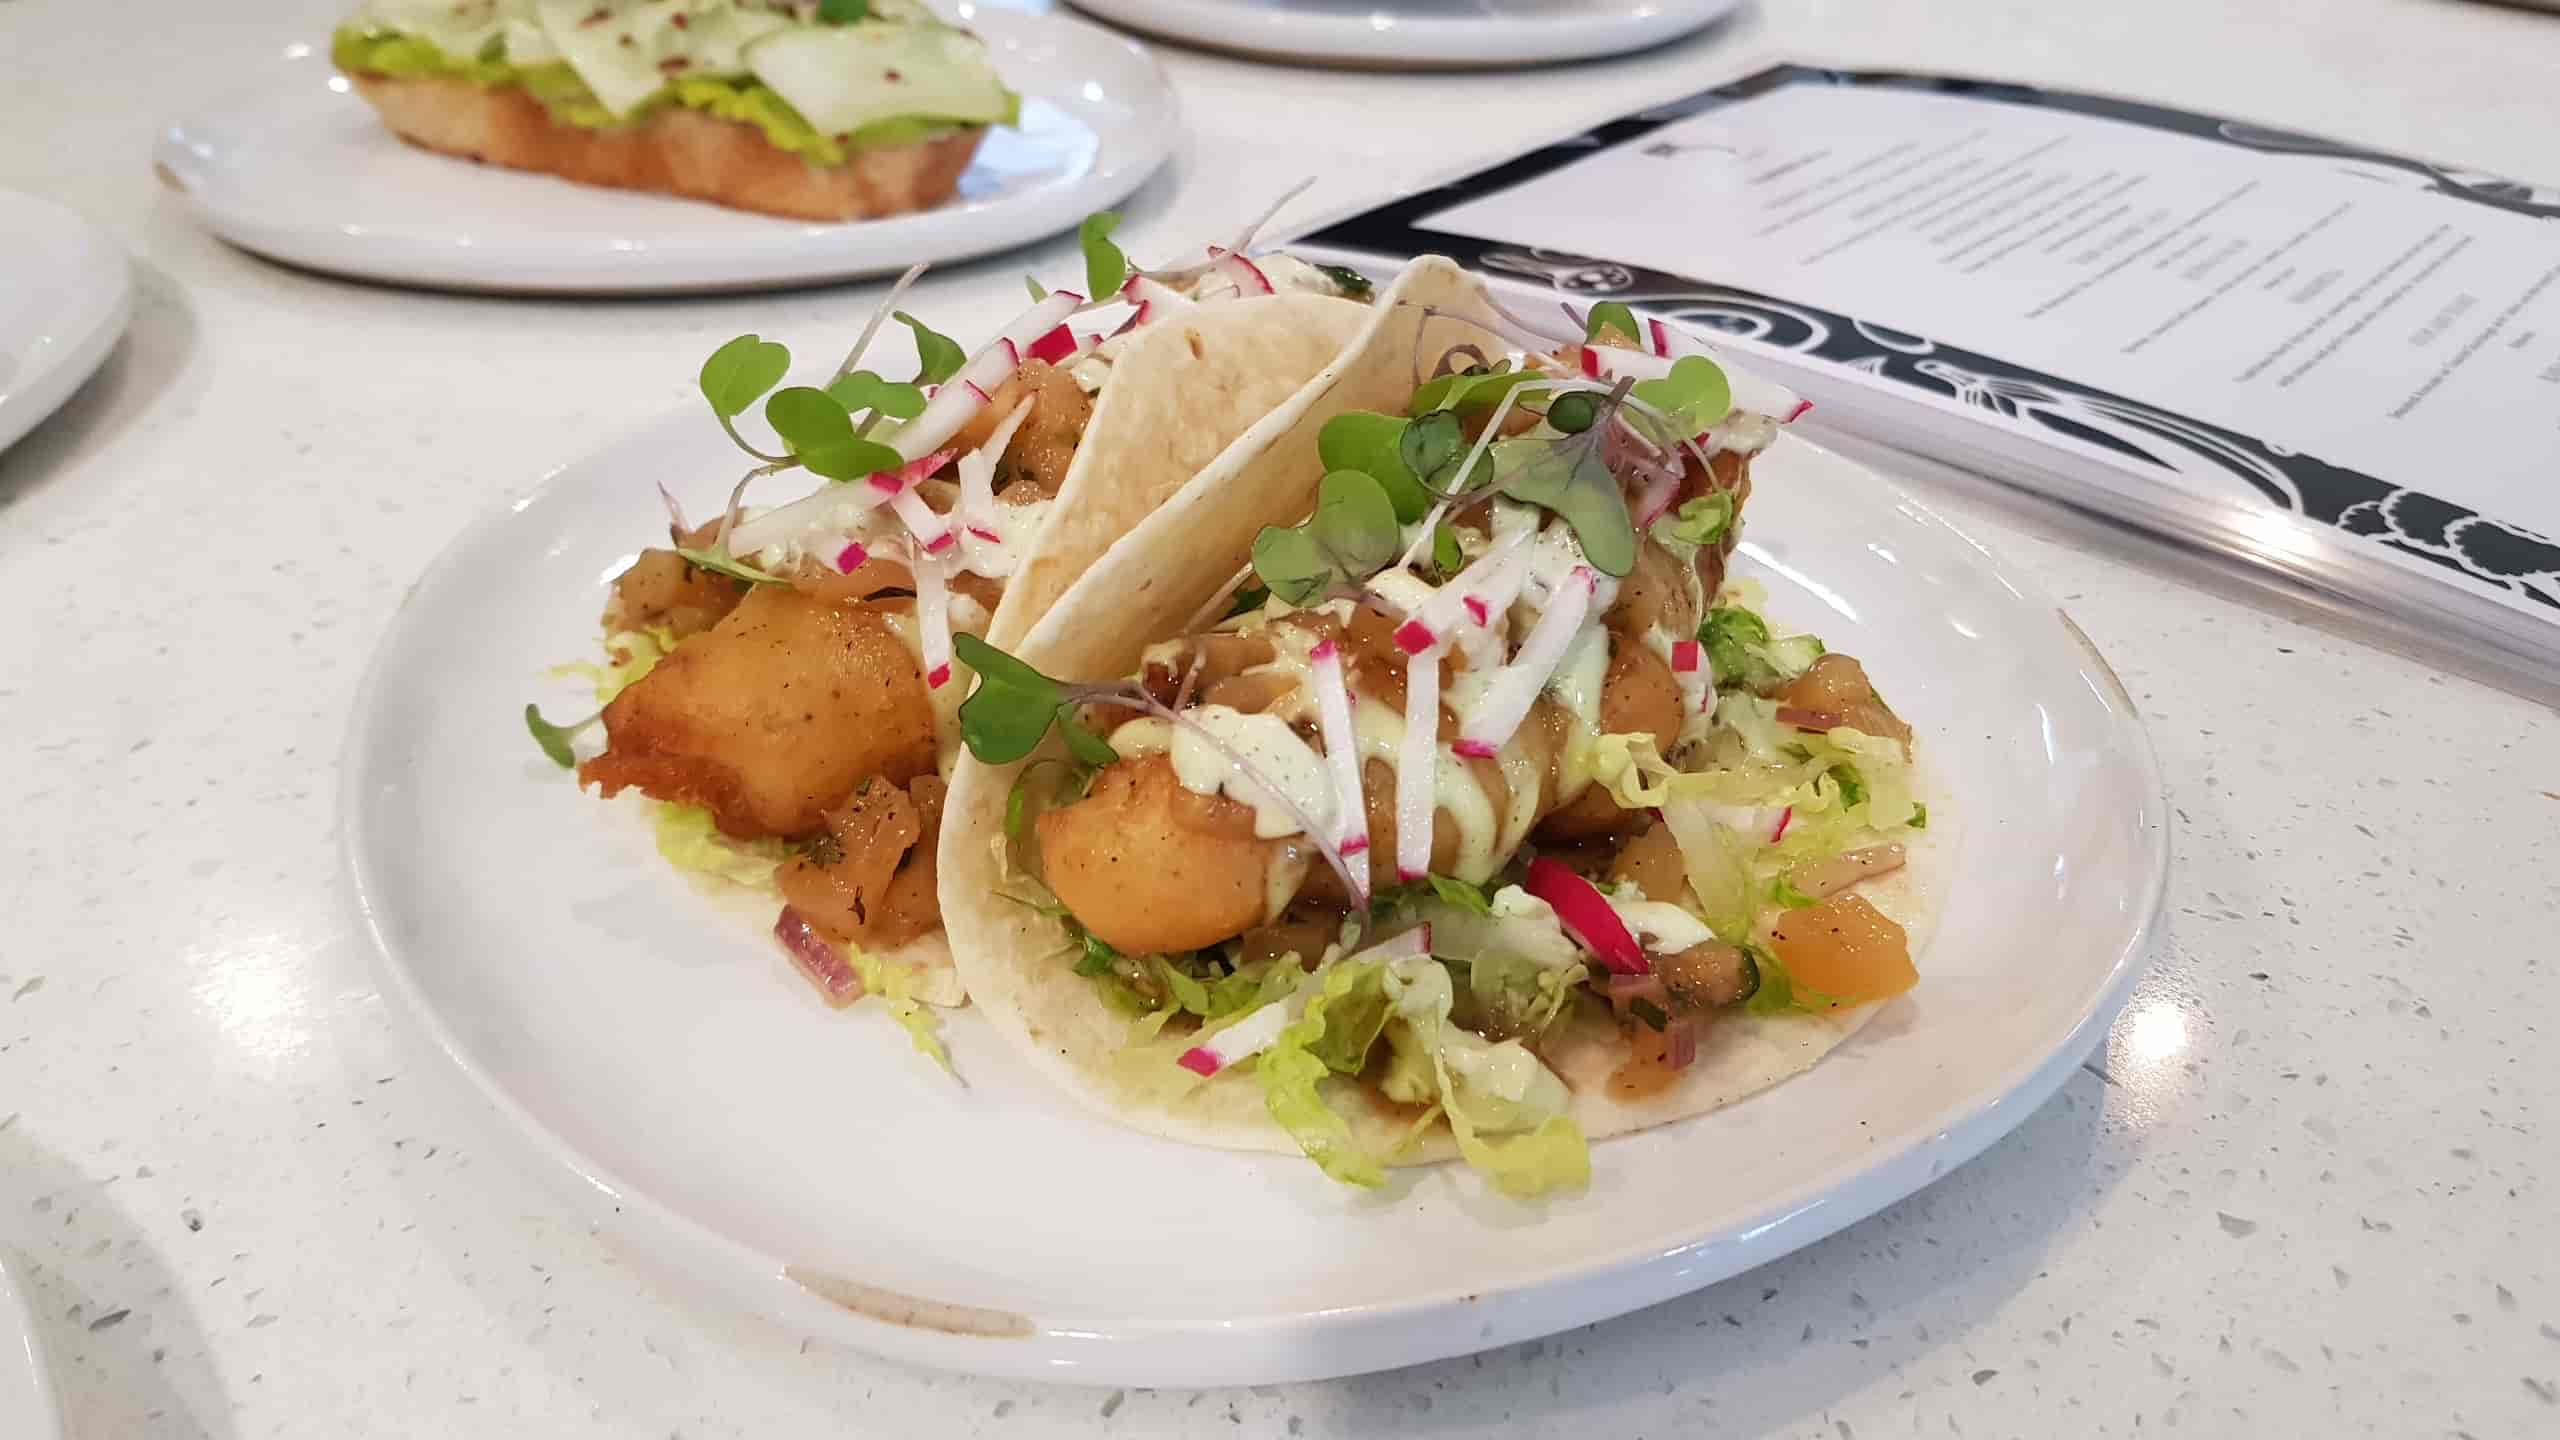 Bake and Shark Taco at Five the Eatery